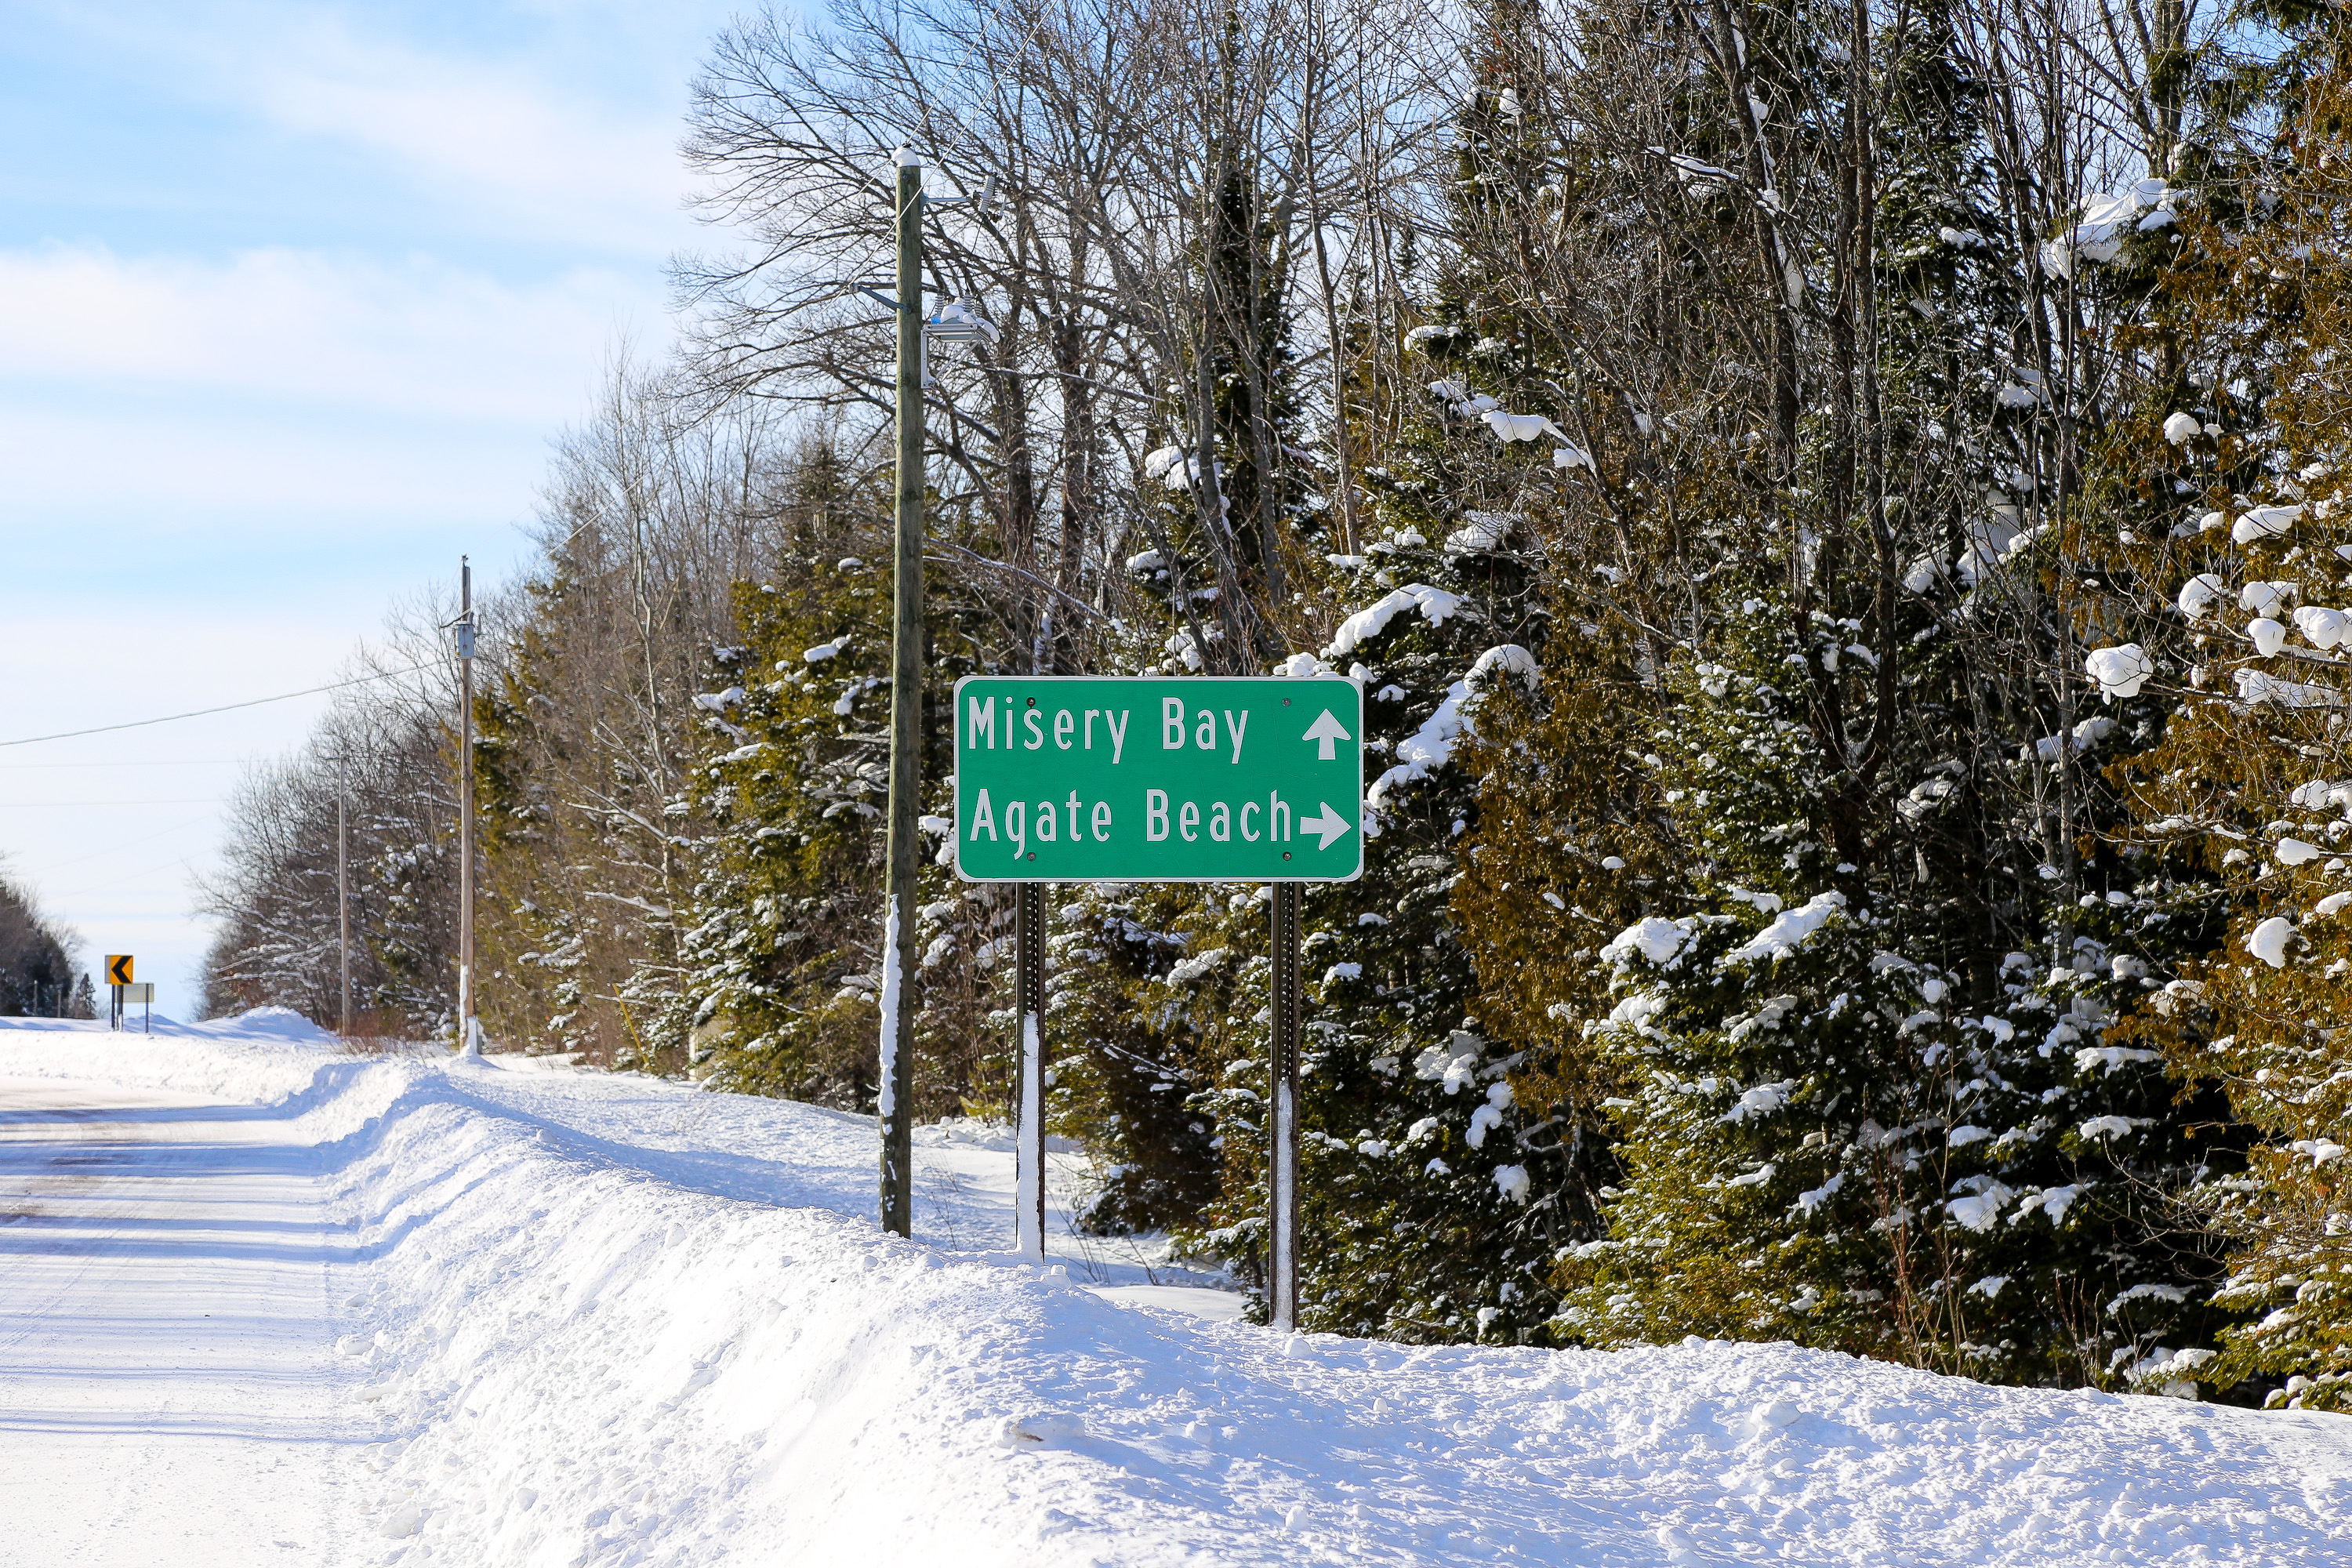 Photograph of the Misery Bay Agate Beach Sign in the winter, located in Toivola, Michigan.